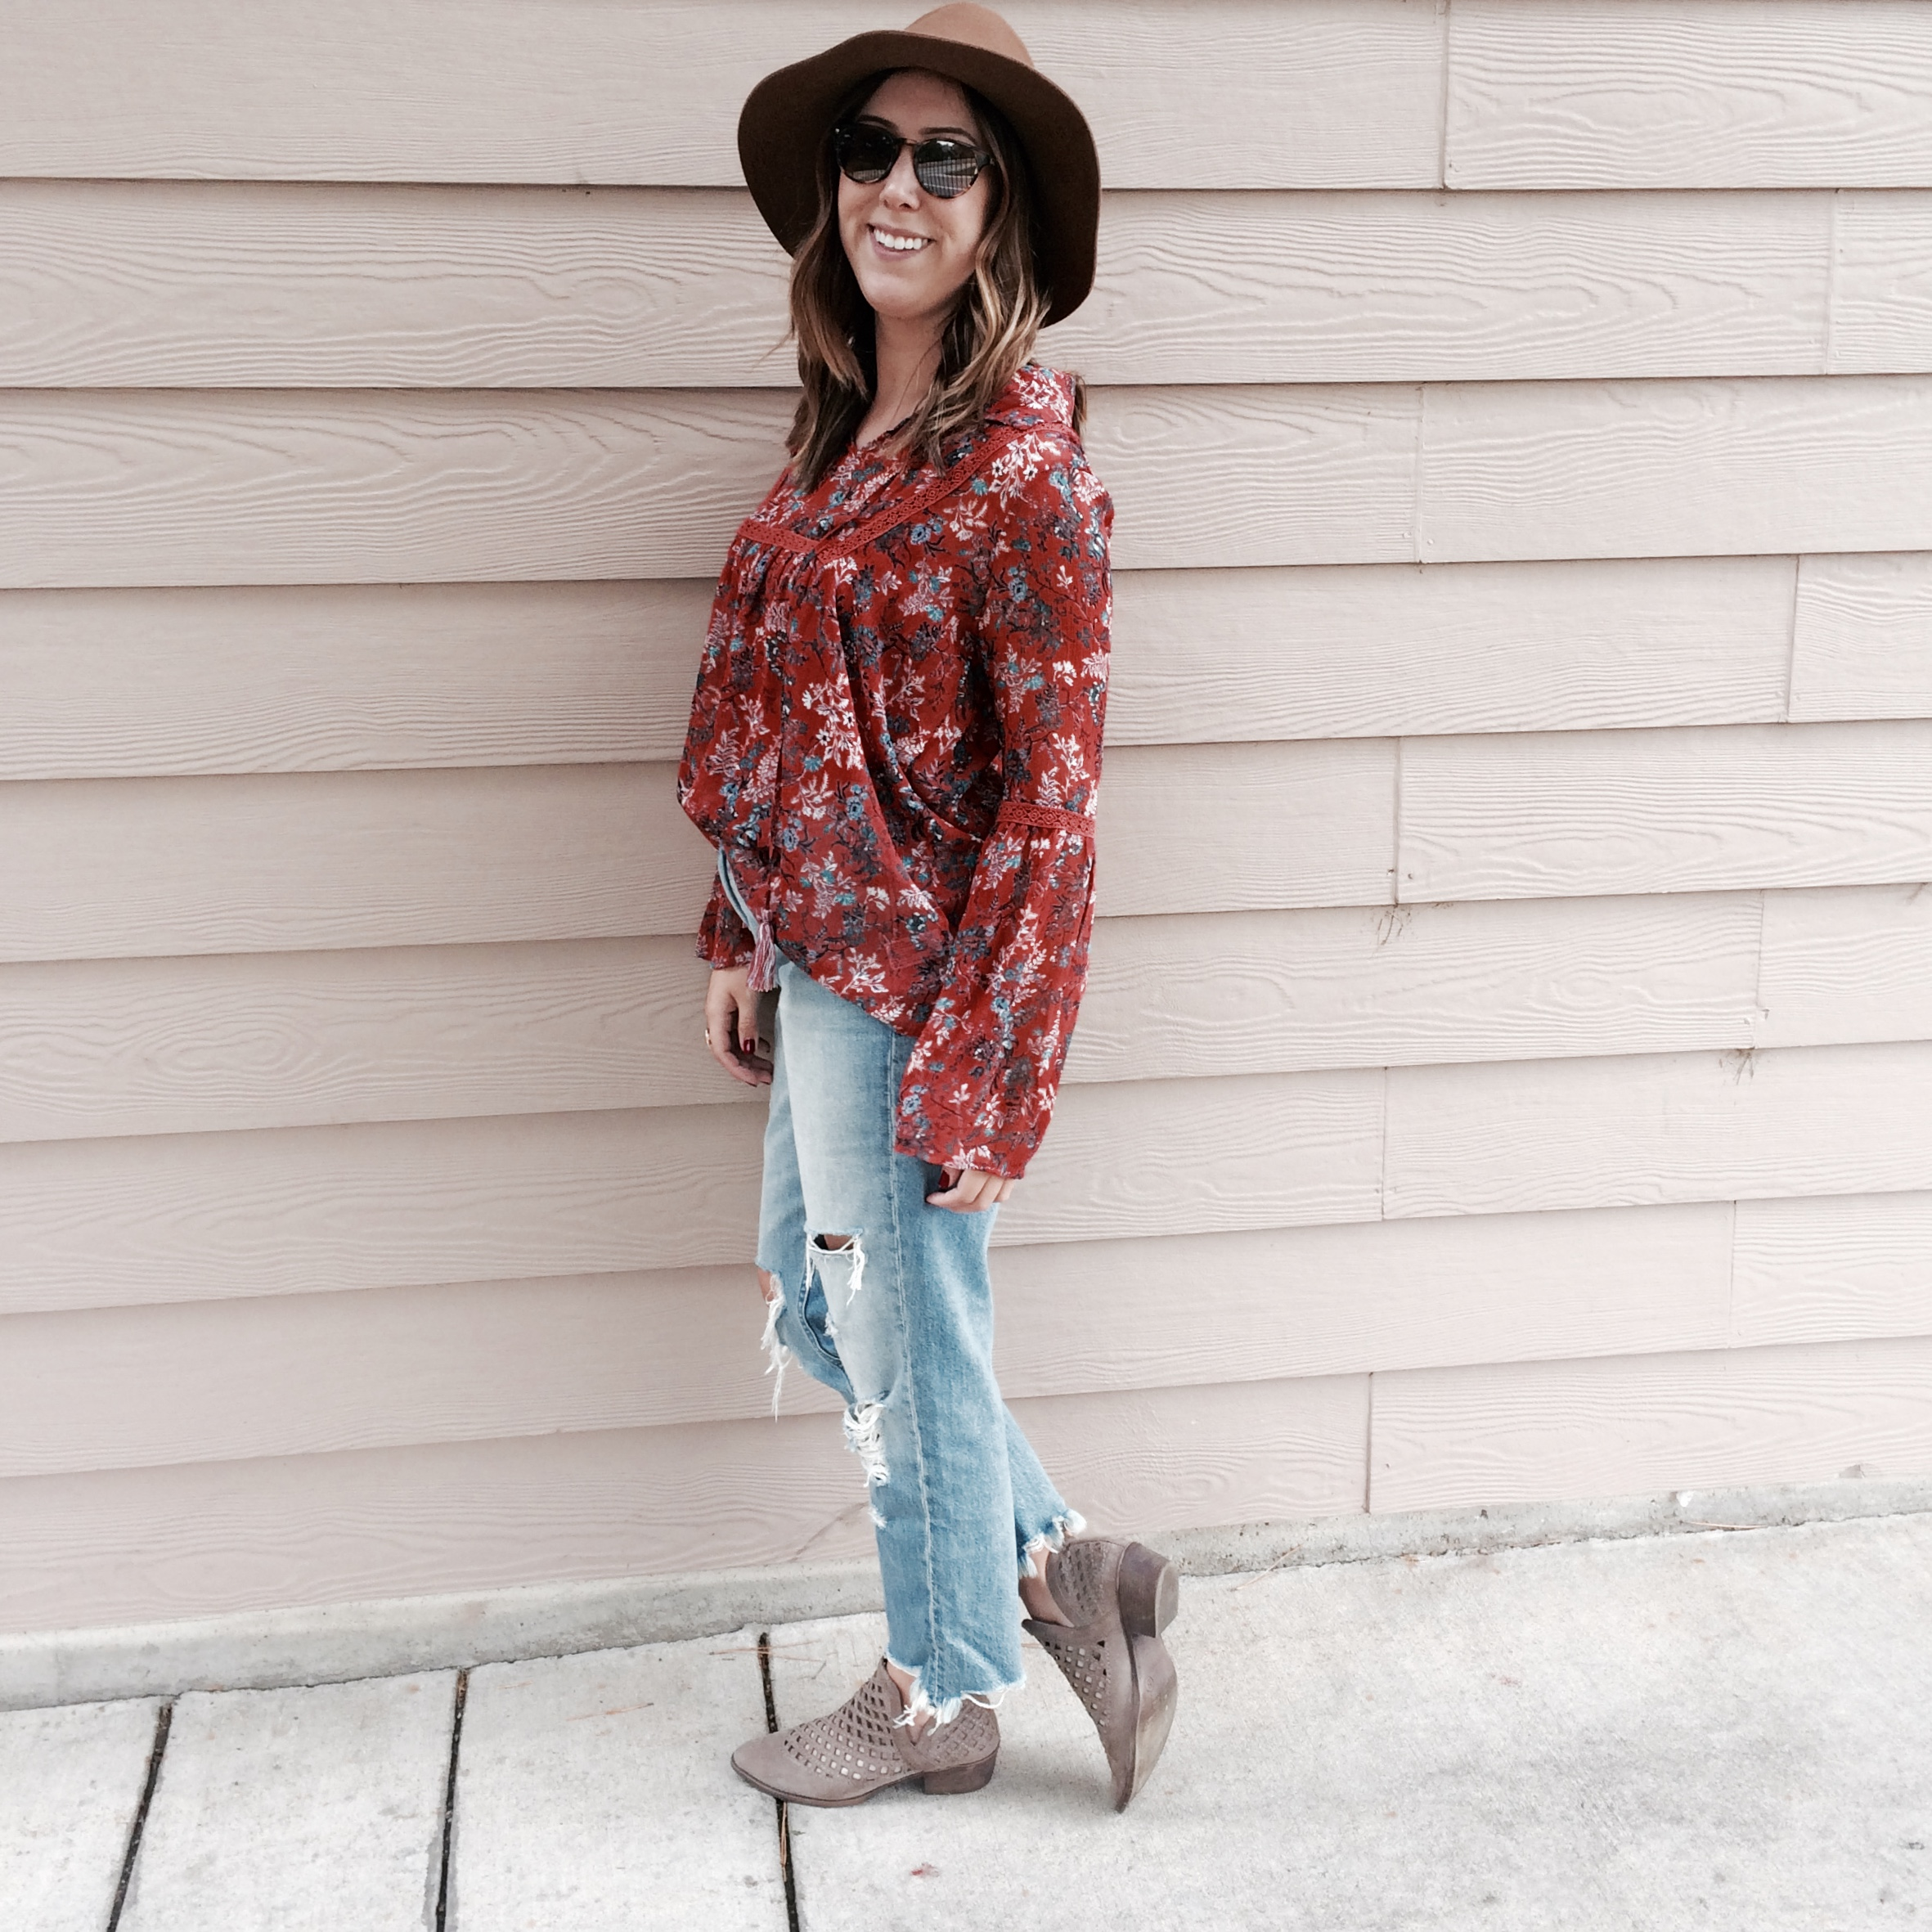 I half tucked my blouse, and accessorized with cut out booties and a floppy hat for all the fall vibes!